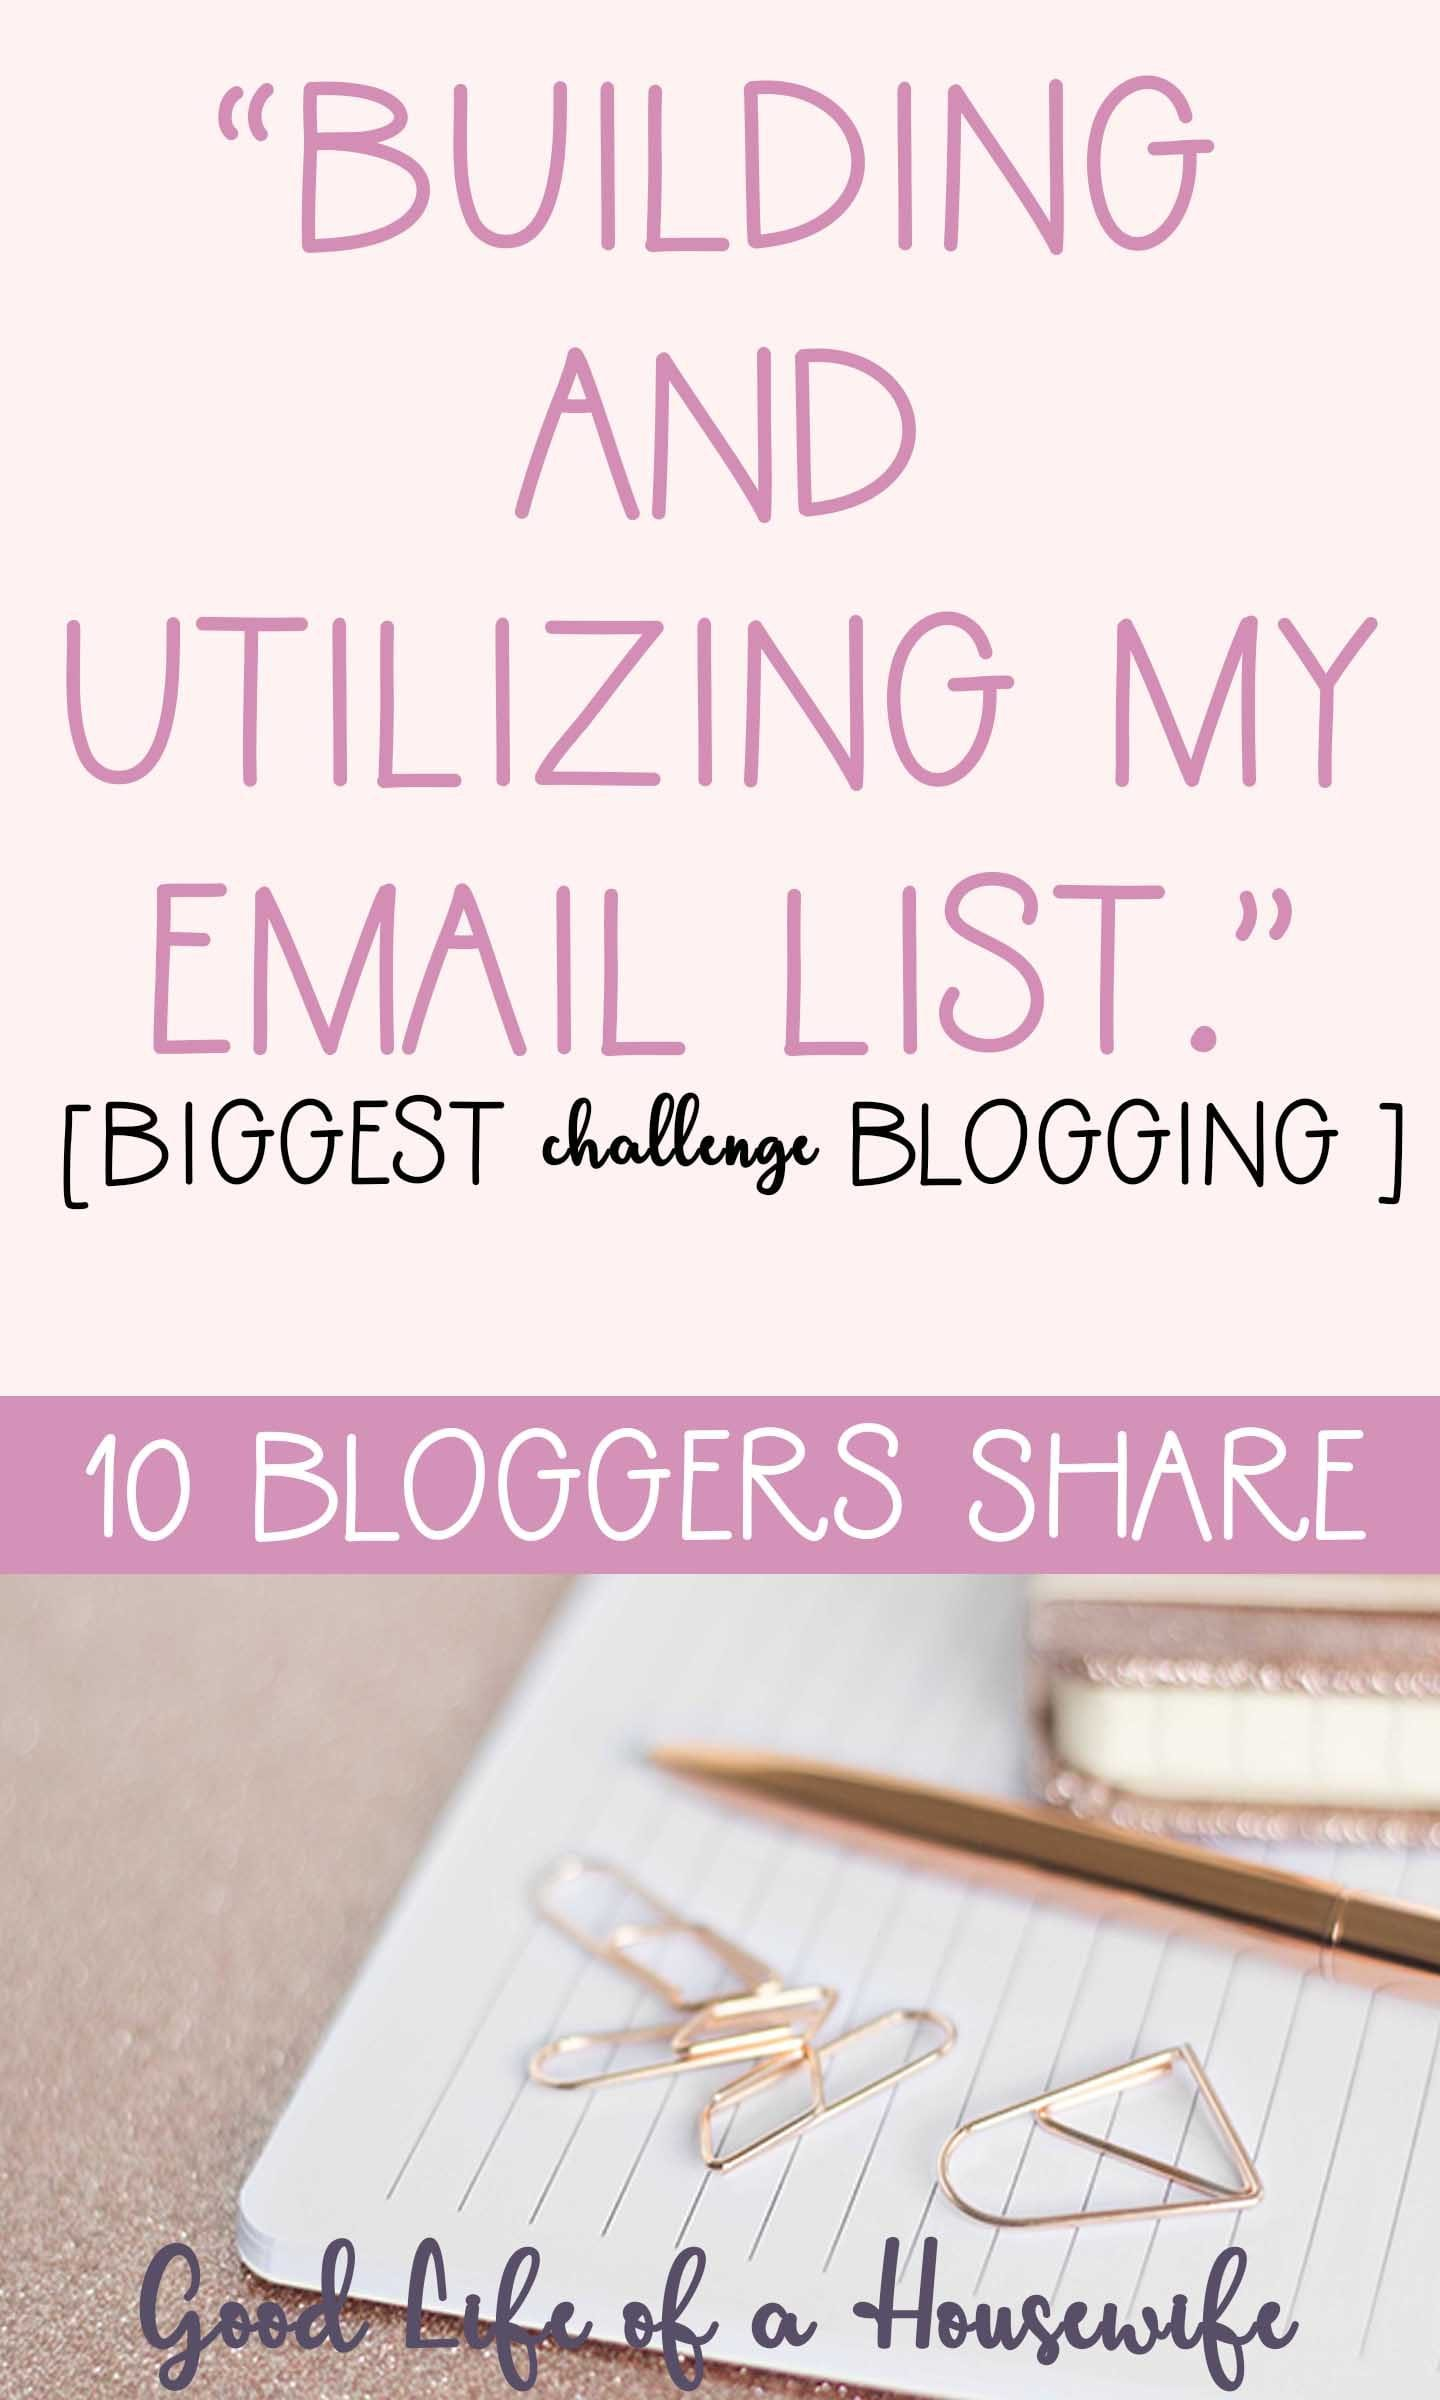 10 bloggers share their biggest challenge blogging. The challenge of utilizing and working my email list.